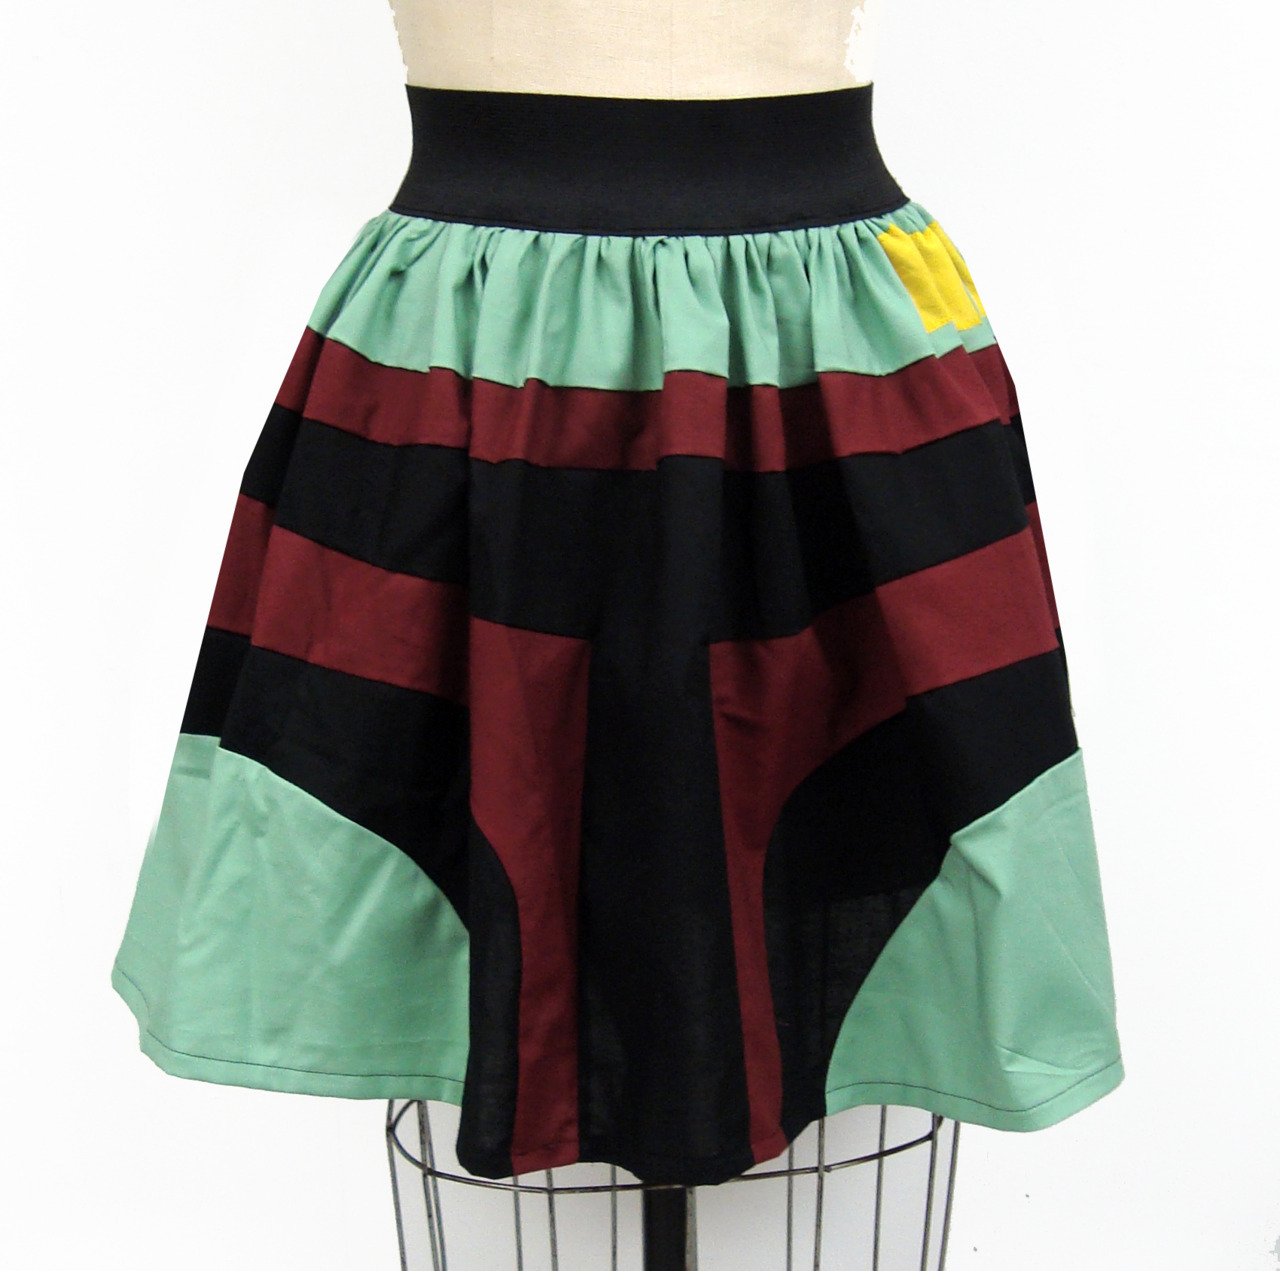 a-river-monster-sith:  gochaserabbits:  Boba Fett Inspired Skirt!   OHLORD